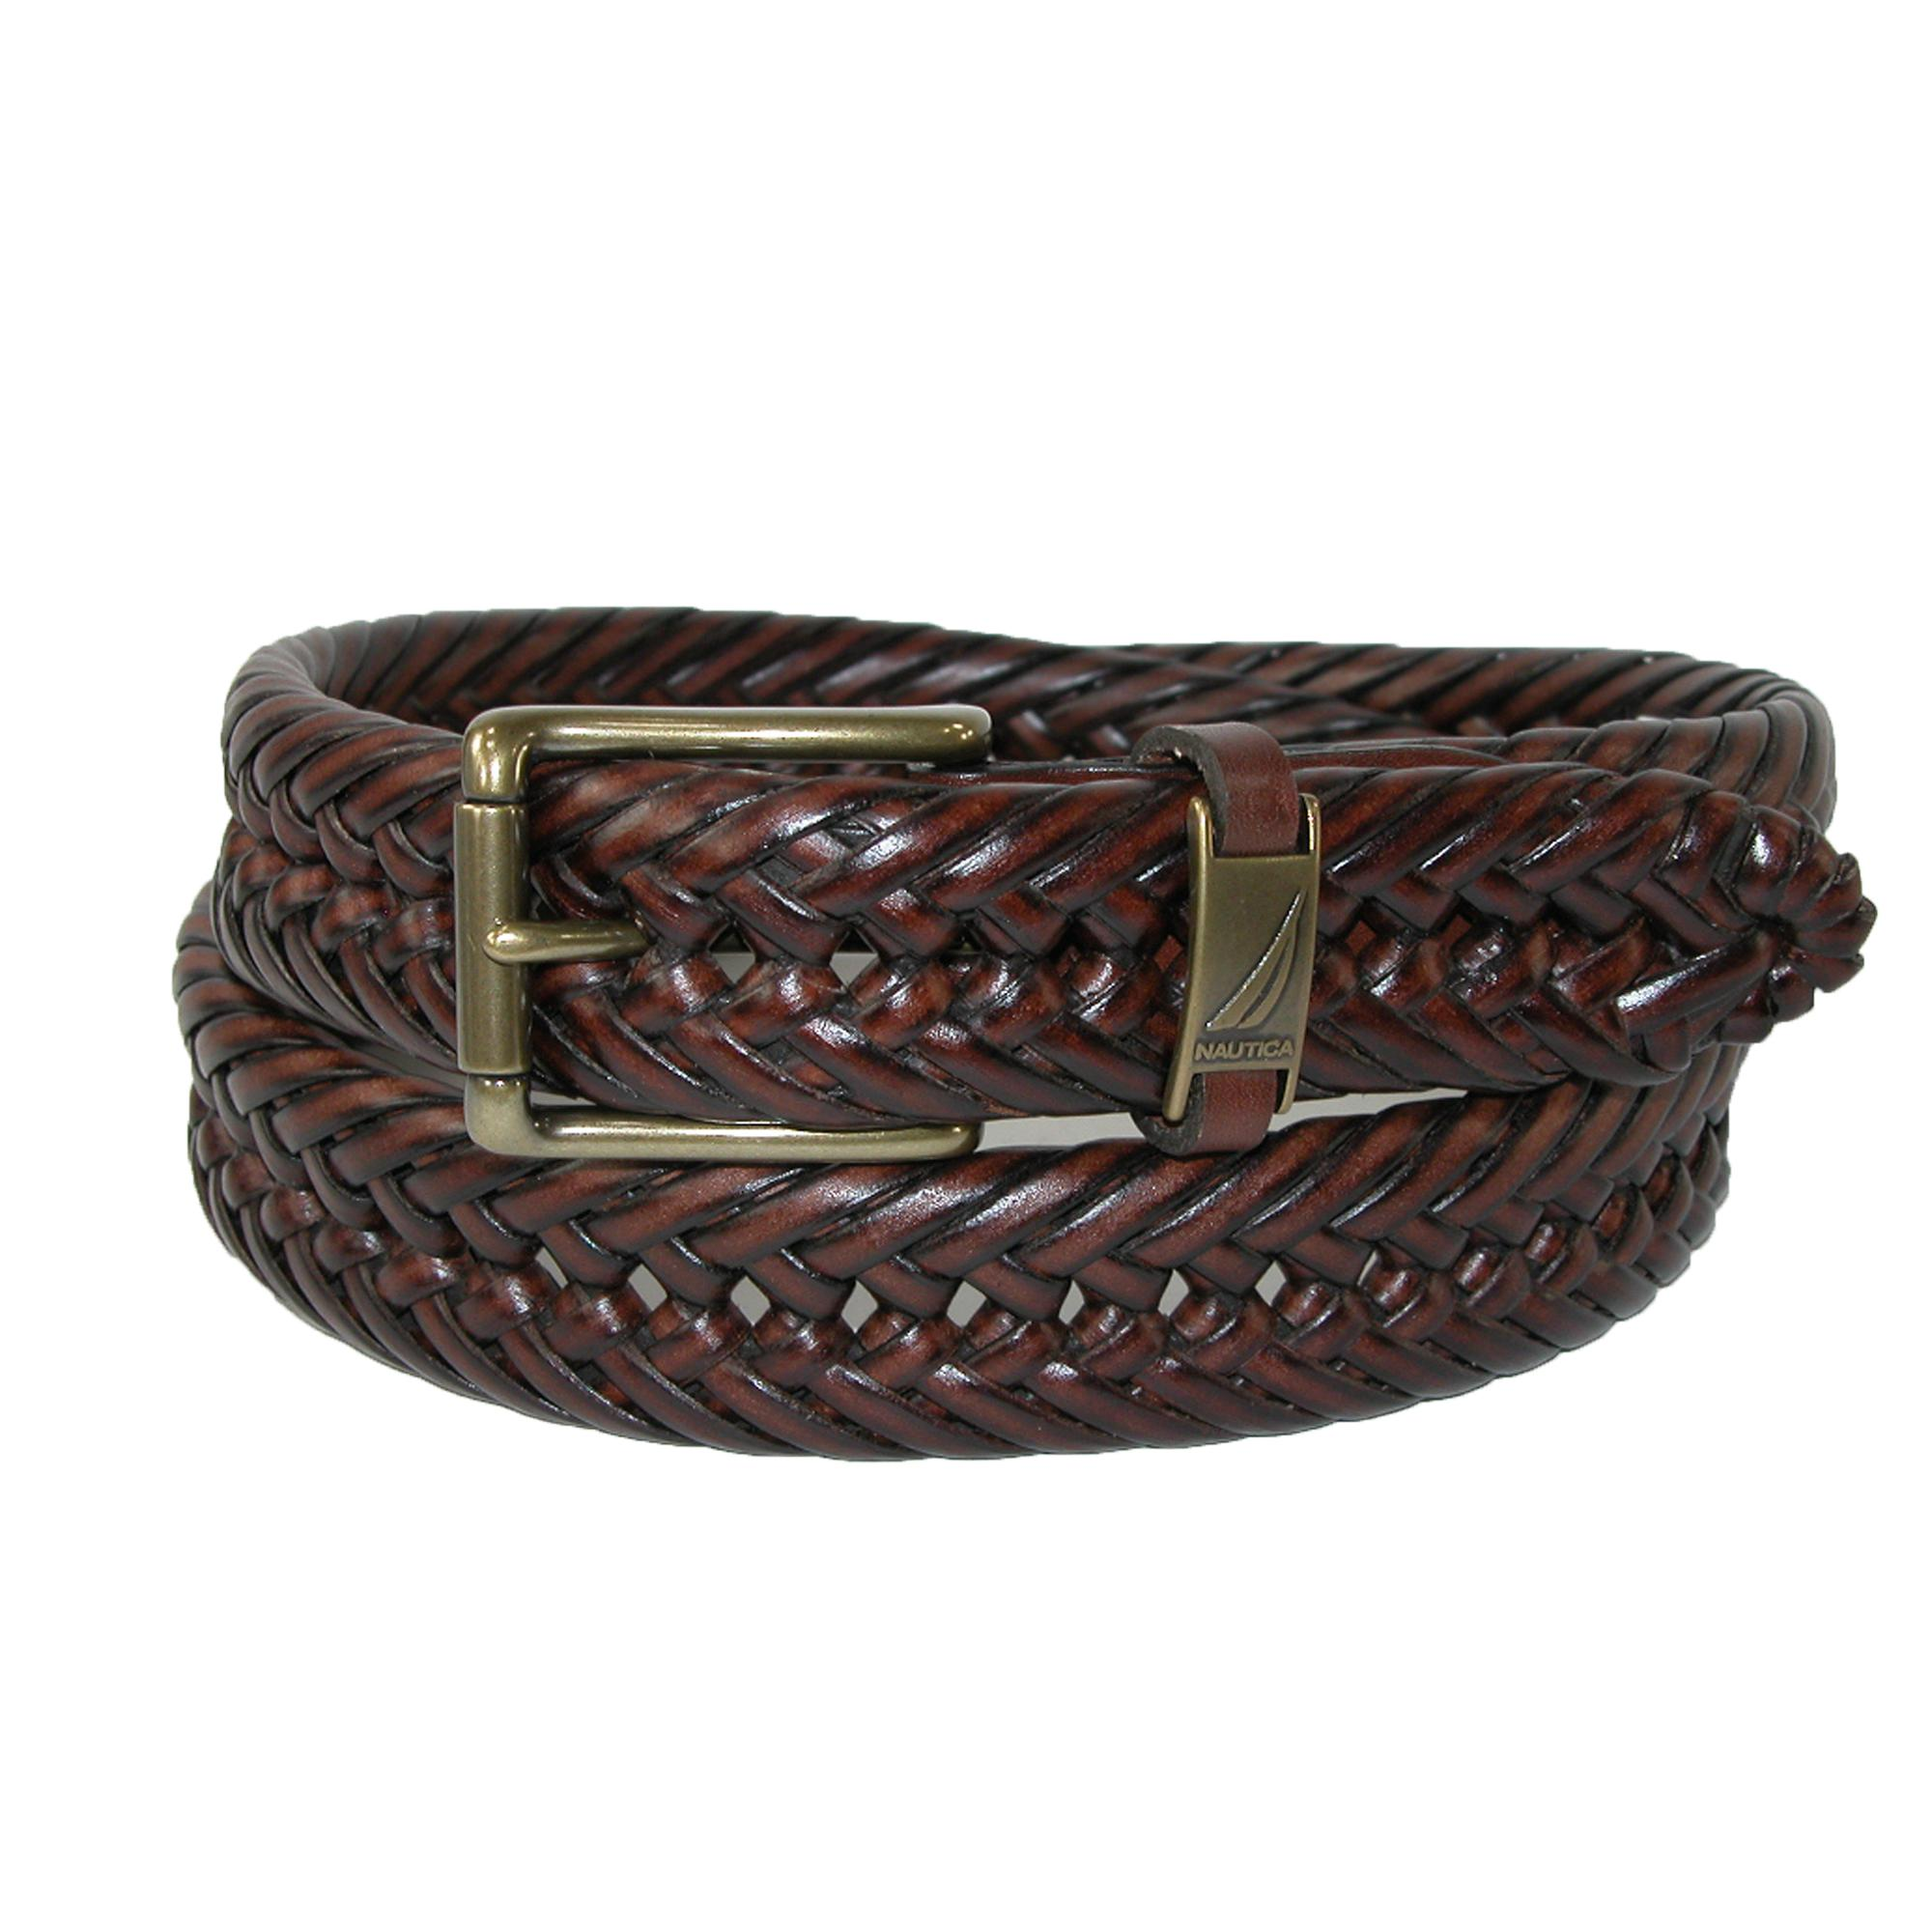 Nautica Mens Leather 1 1/4 Inch Handlaced Basket Weave Braided Belt